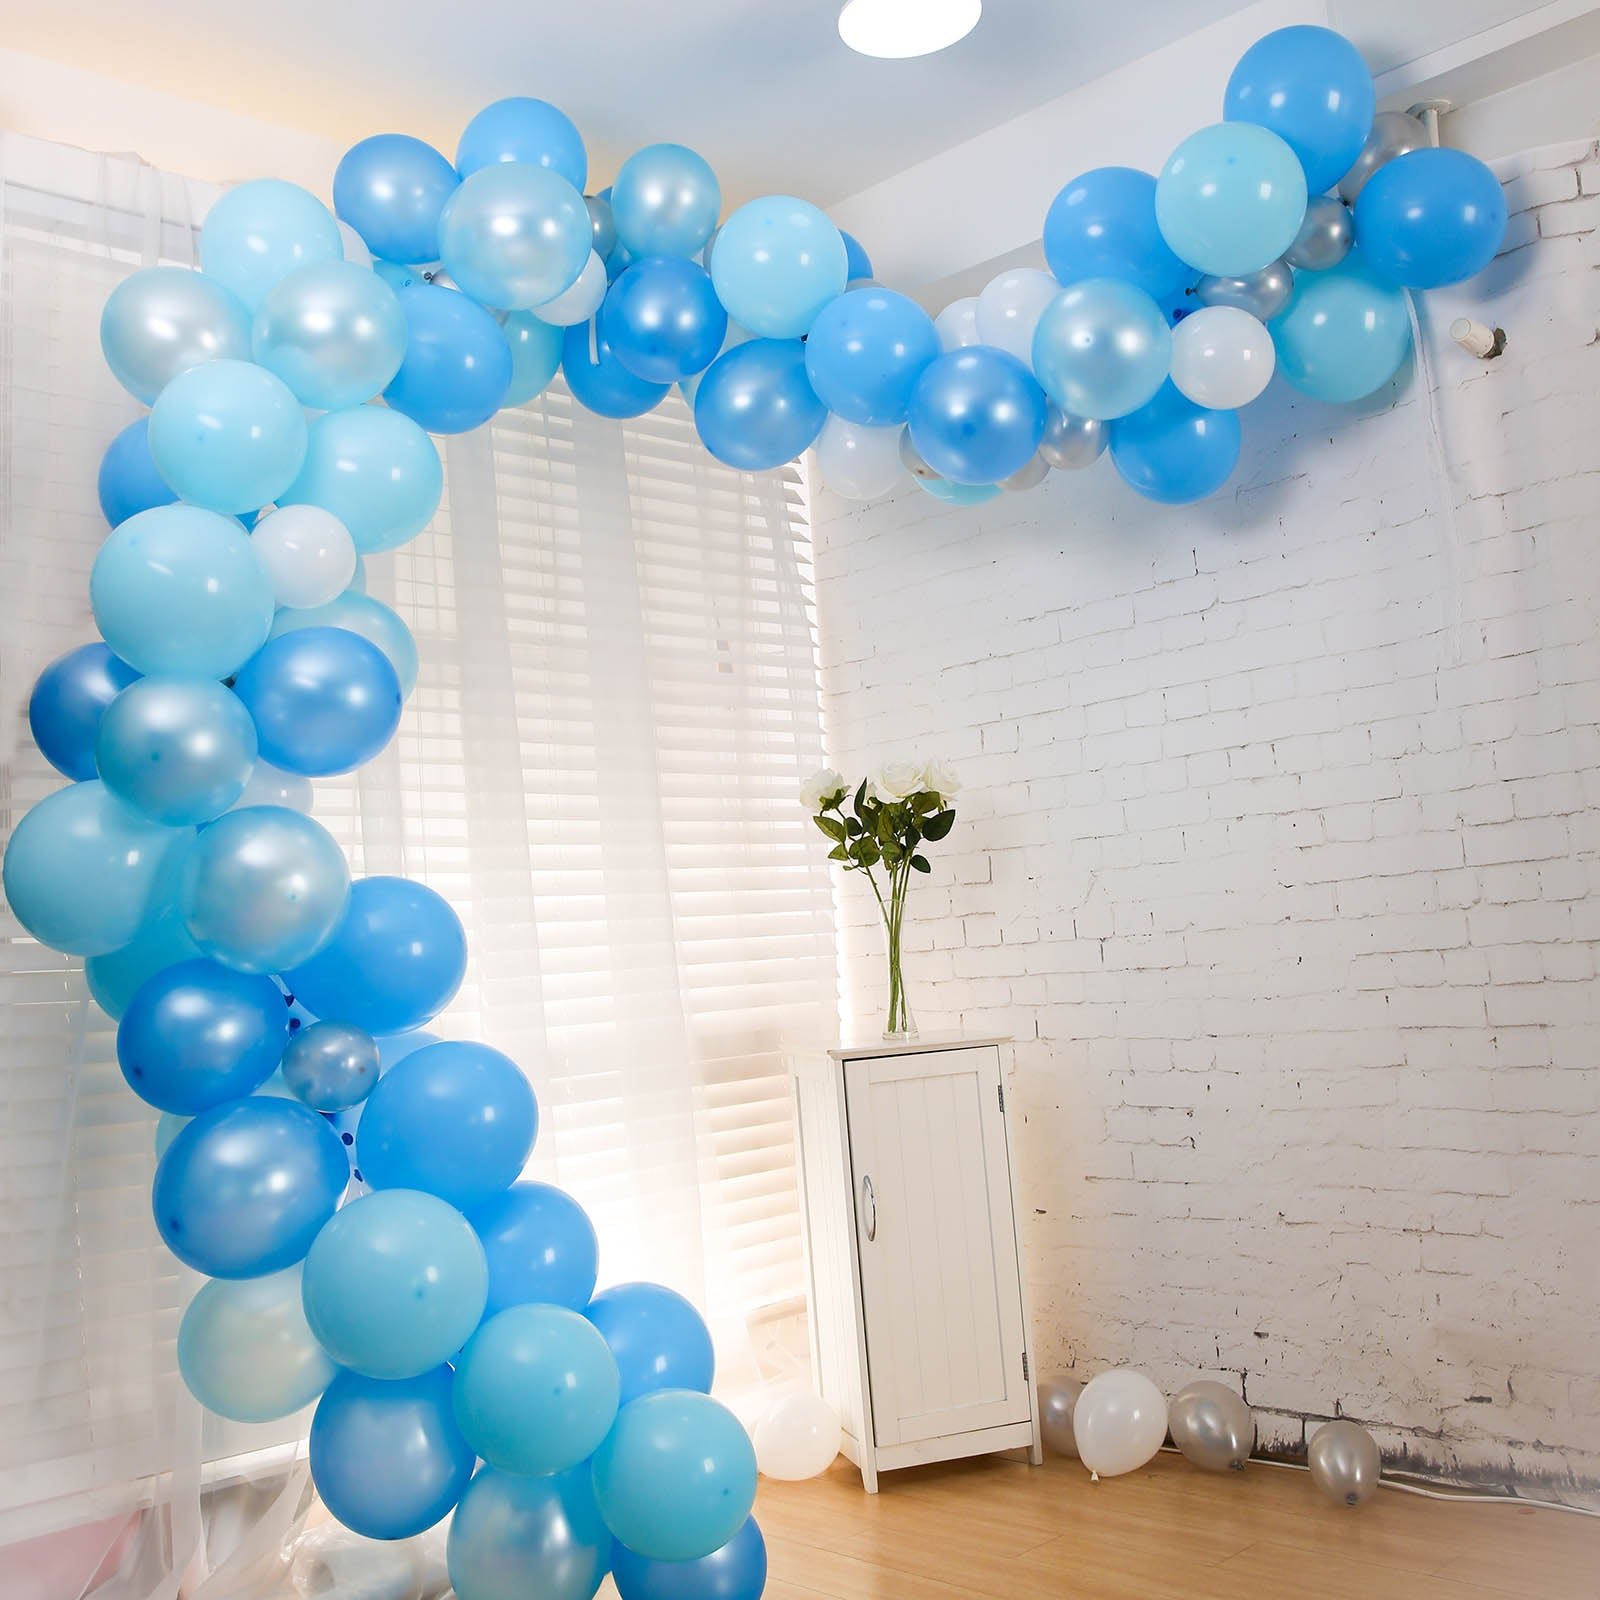 Diy Pack Balloon Garland Kit Balloon Arch Party Decorations Efavormart